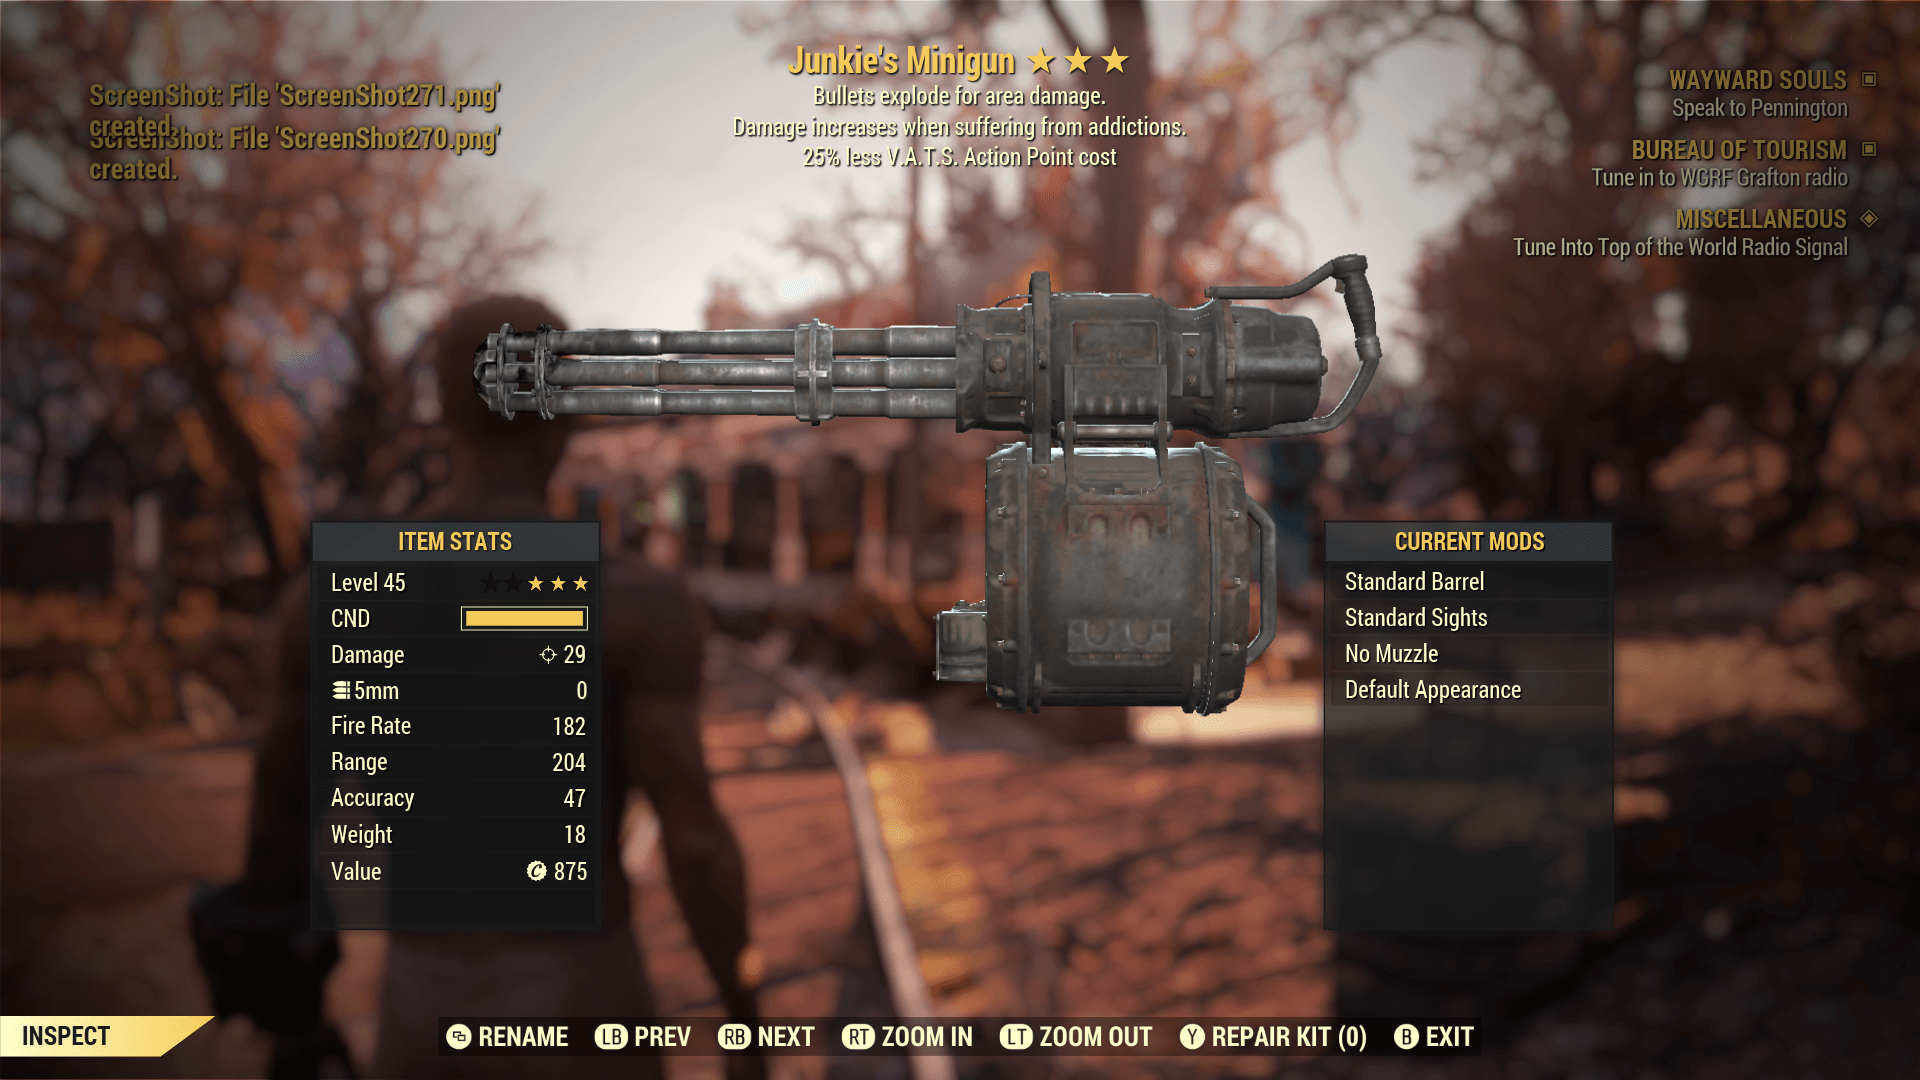 Junkie's Minigun[25% less V.A.T.S.Action Point cost]